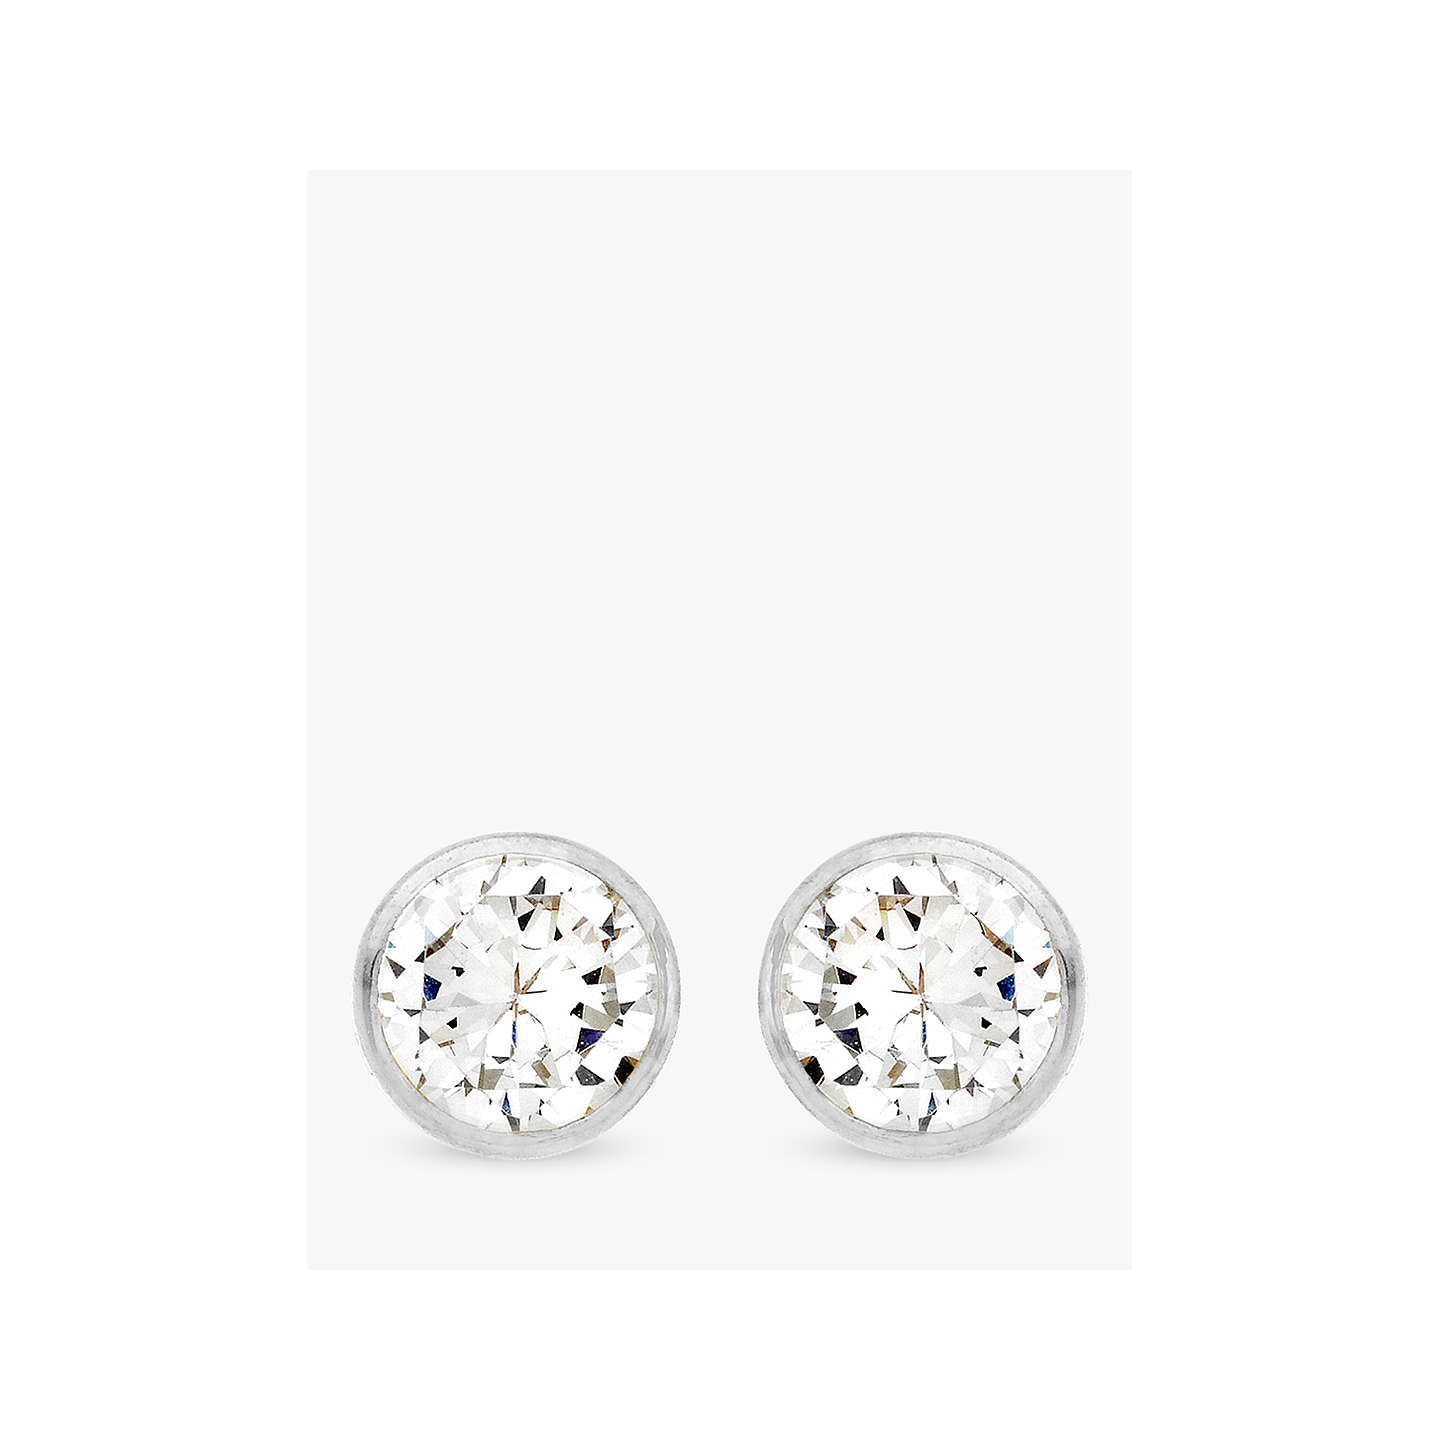 simply zirconia zoom blue cubic earring jewellery set stud earrings silver sterling